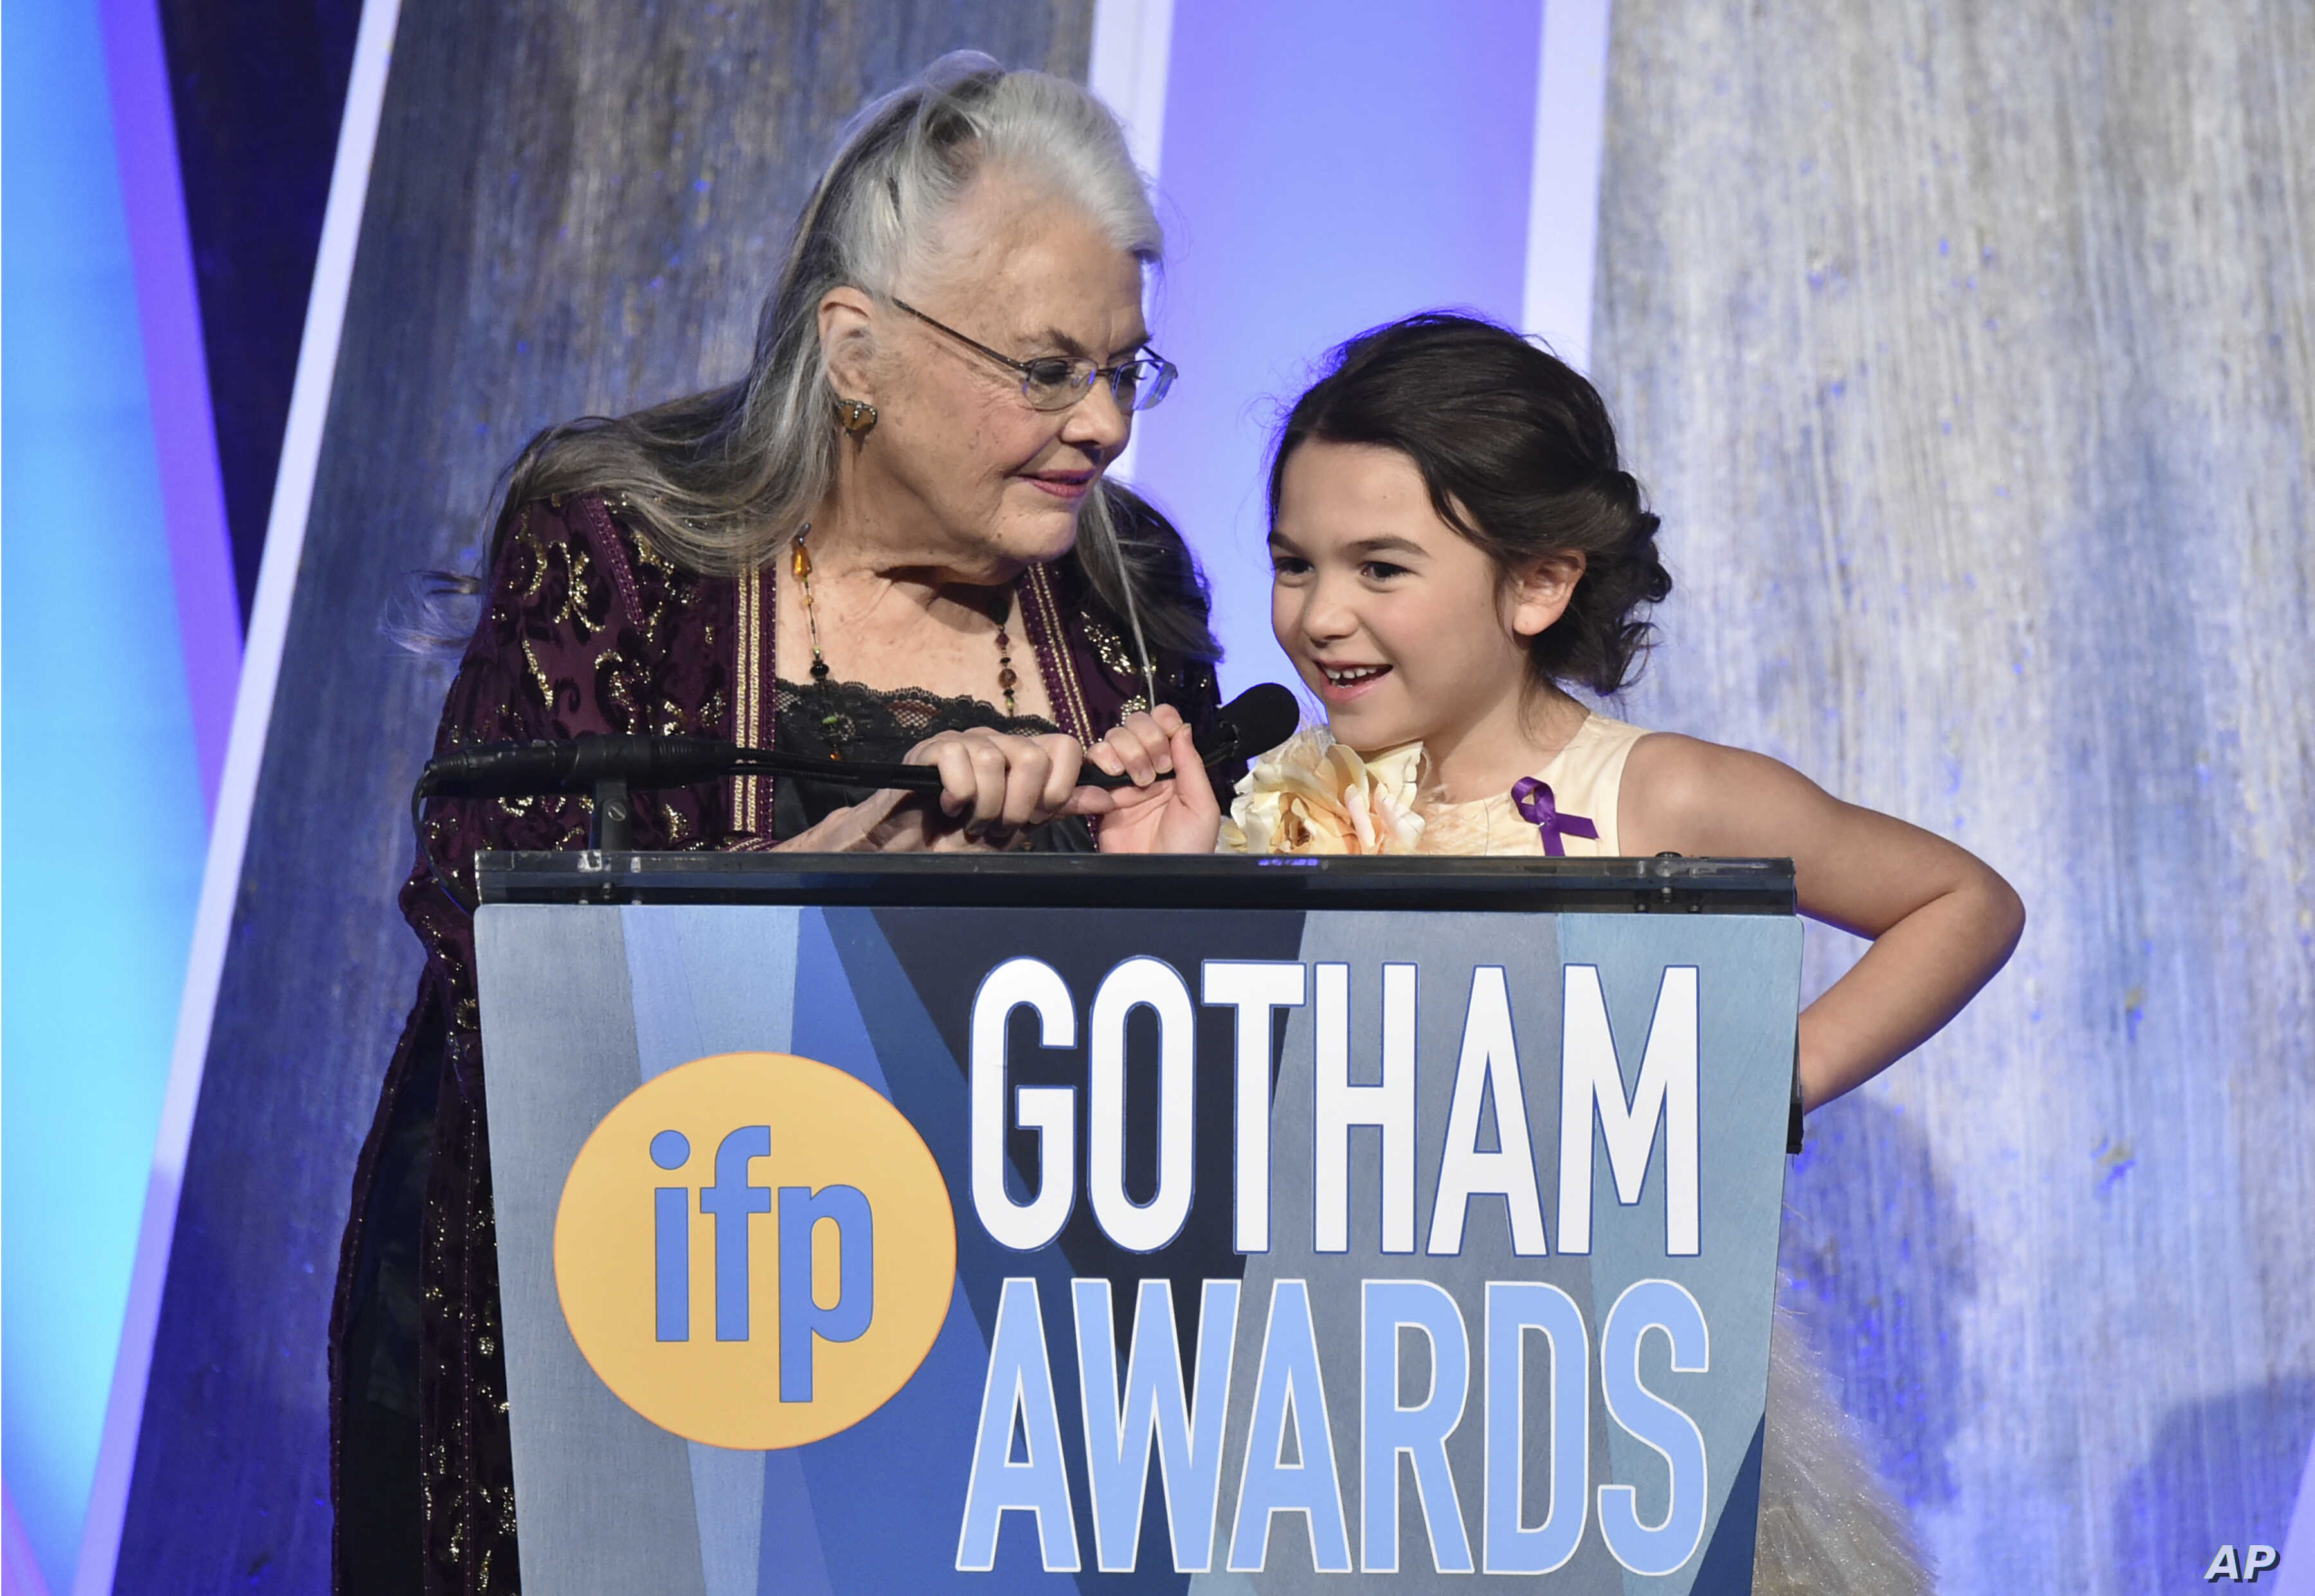 Actors Lois Smith, left, and Brooklynn Prince present at the 27th annual Independent Film Project's Gotham Awards at Cipriani Wall Street, Nov. 27, 2017, in New York.